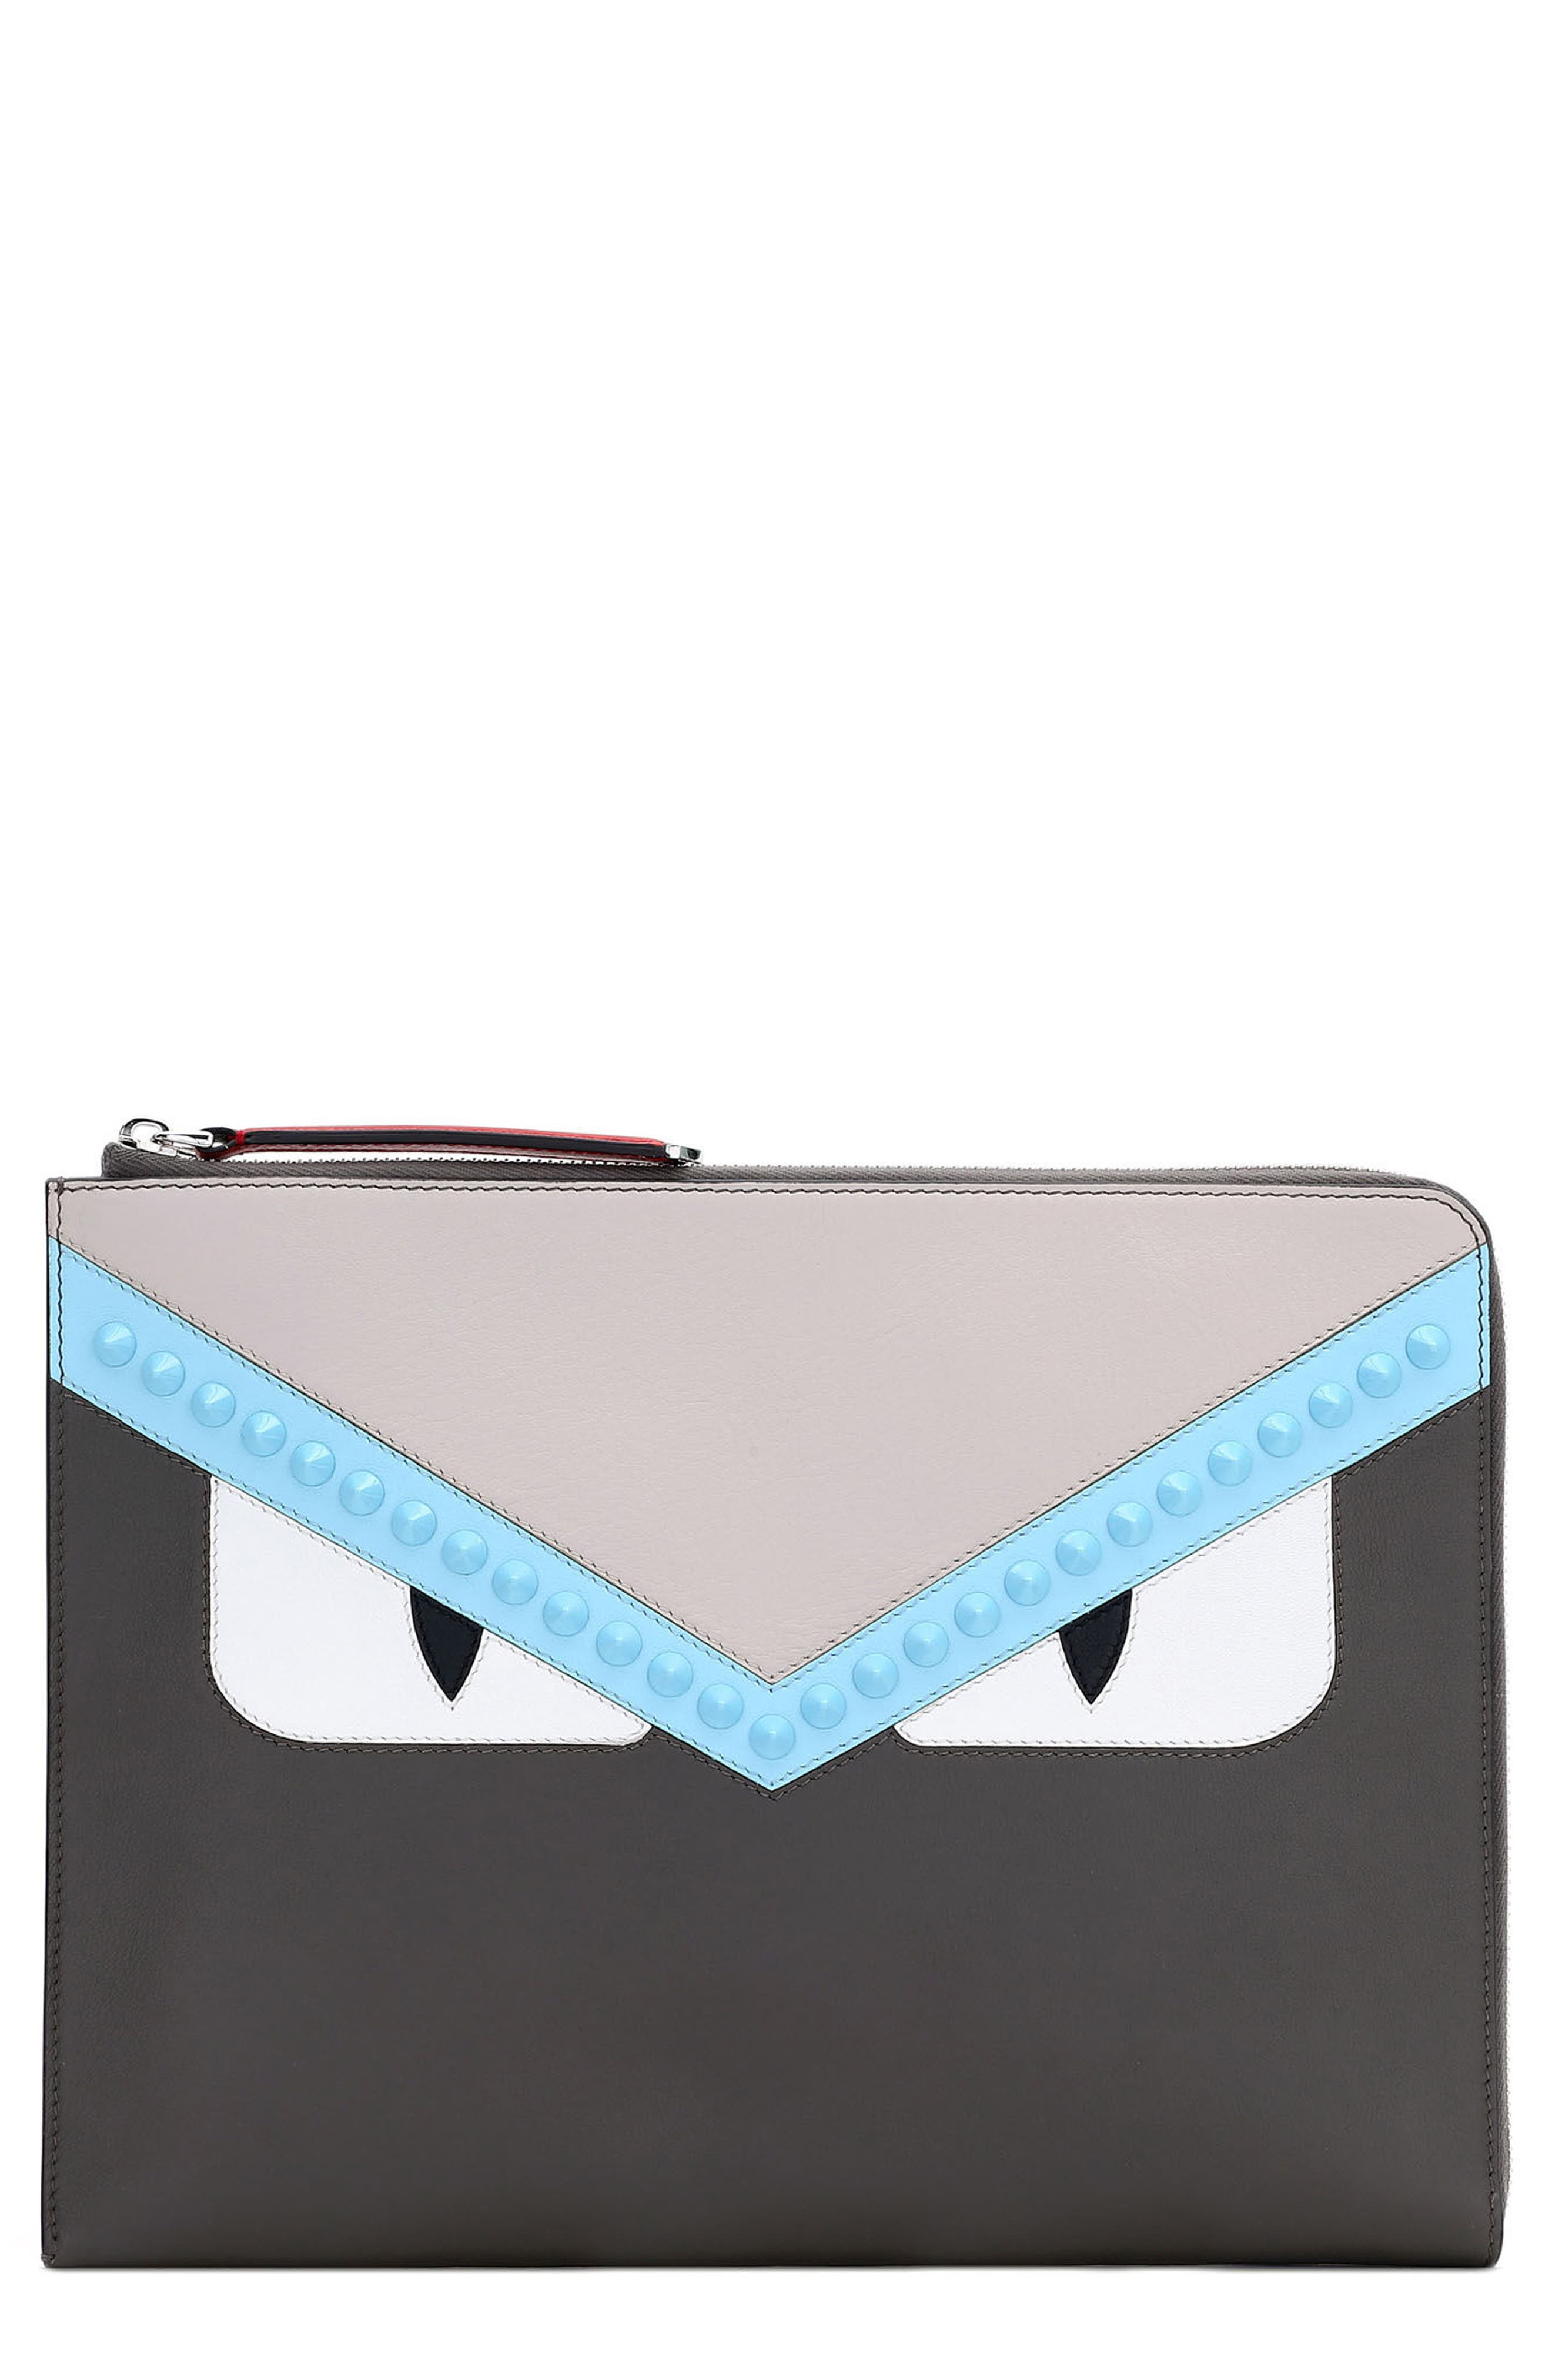 Fendi Large Monster Leather Zip Pouch